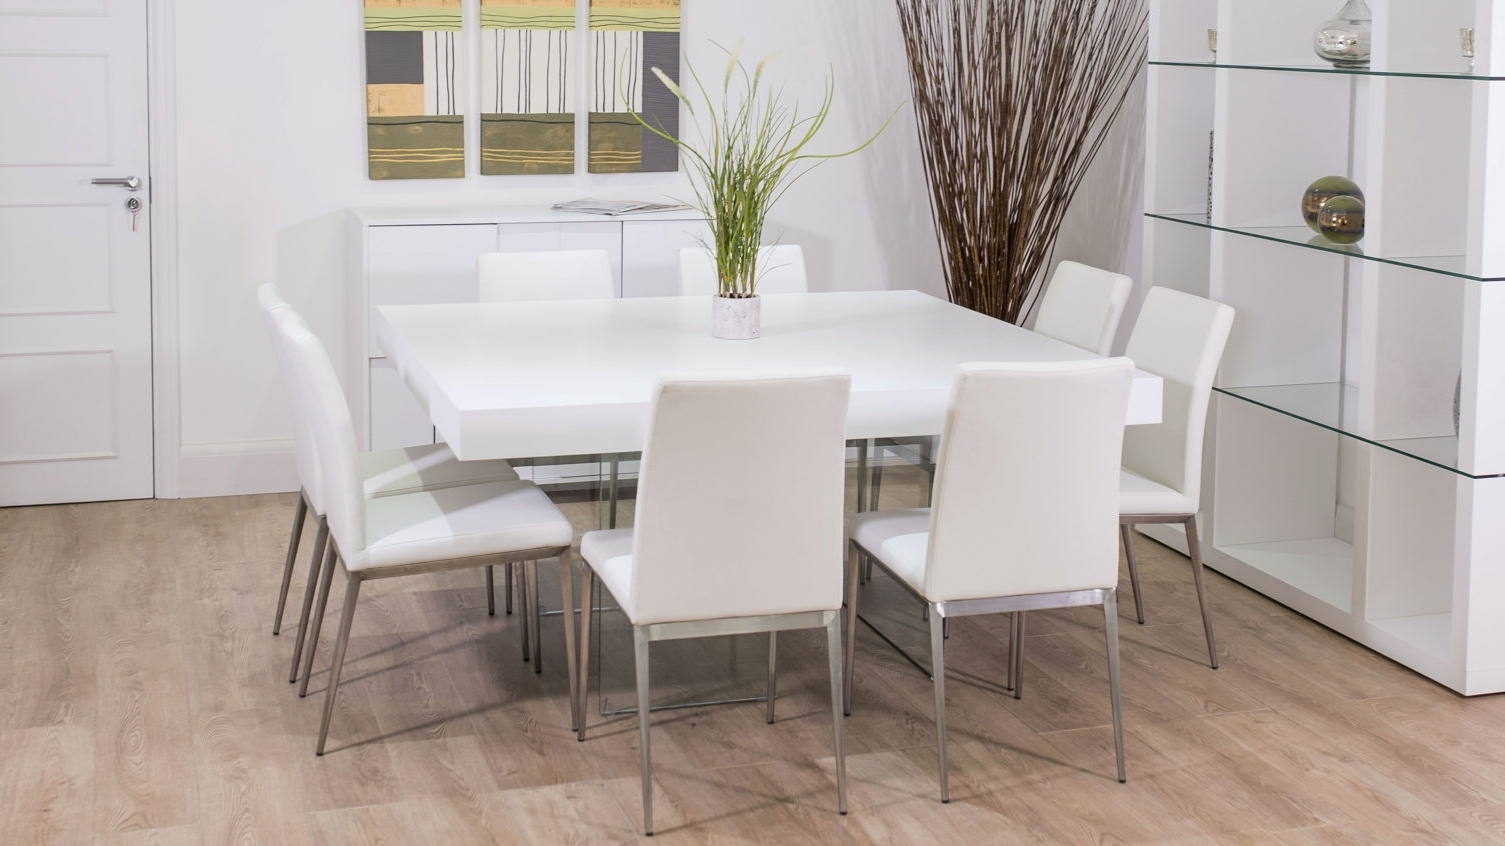 White 8 Seater Dining Tables For 2017 Smartly Seat Square Then Ideas Square Table Together With Opulent (View 23 of 25)